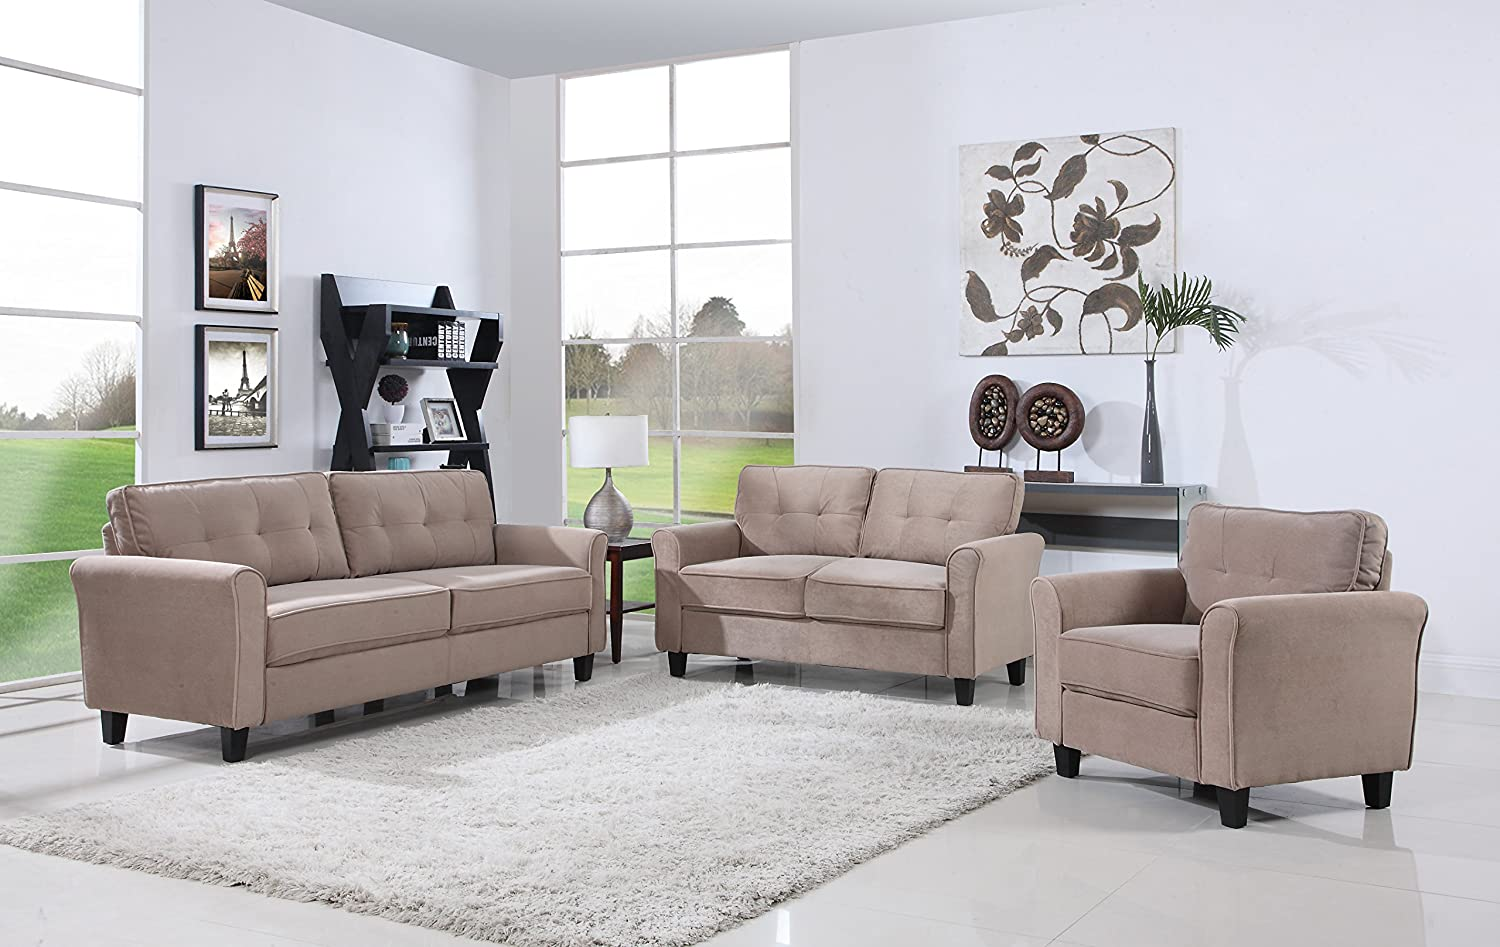 cheap livingroom set cheap living room sets under 300 best living room sets review 4179